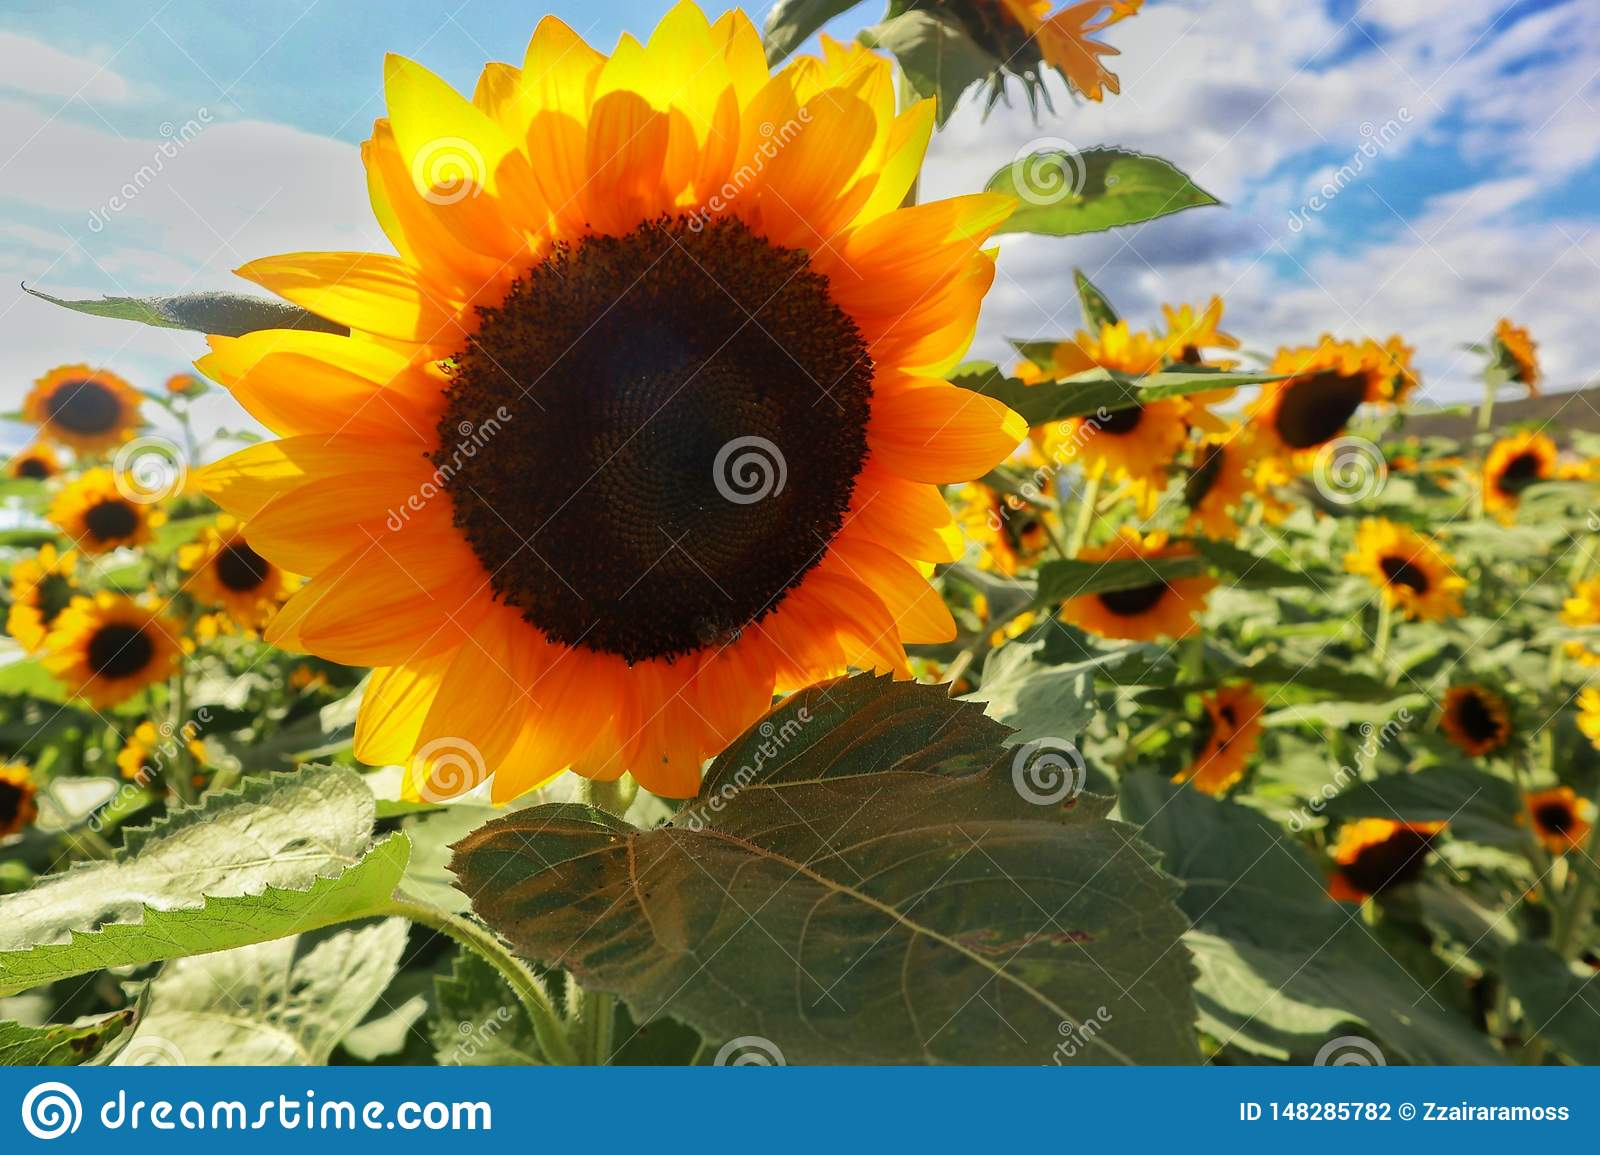 Sunflowers Farm in Puerto Rico